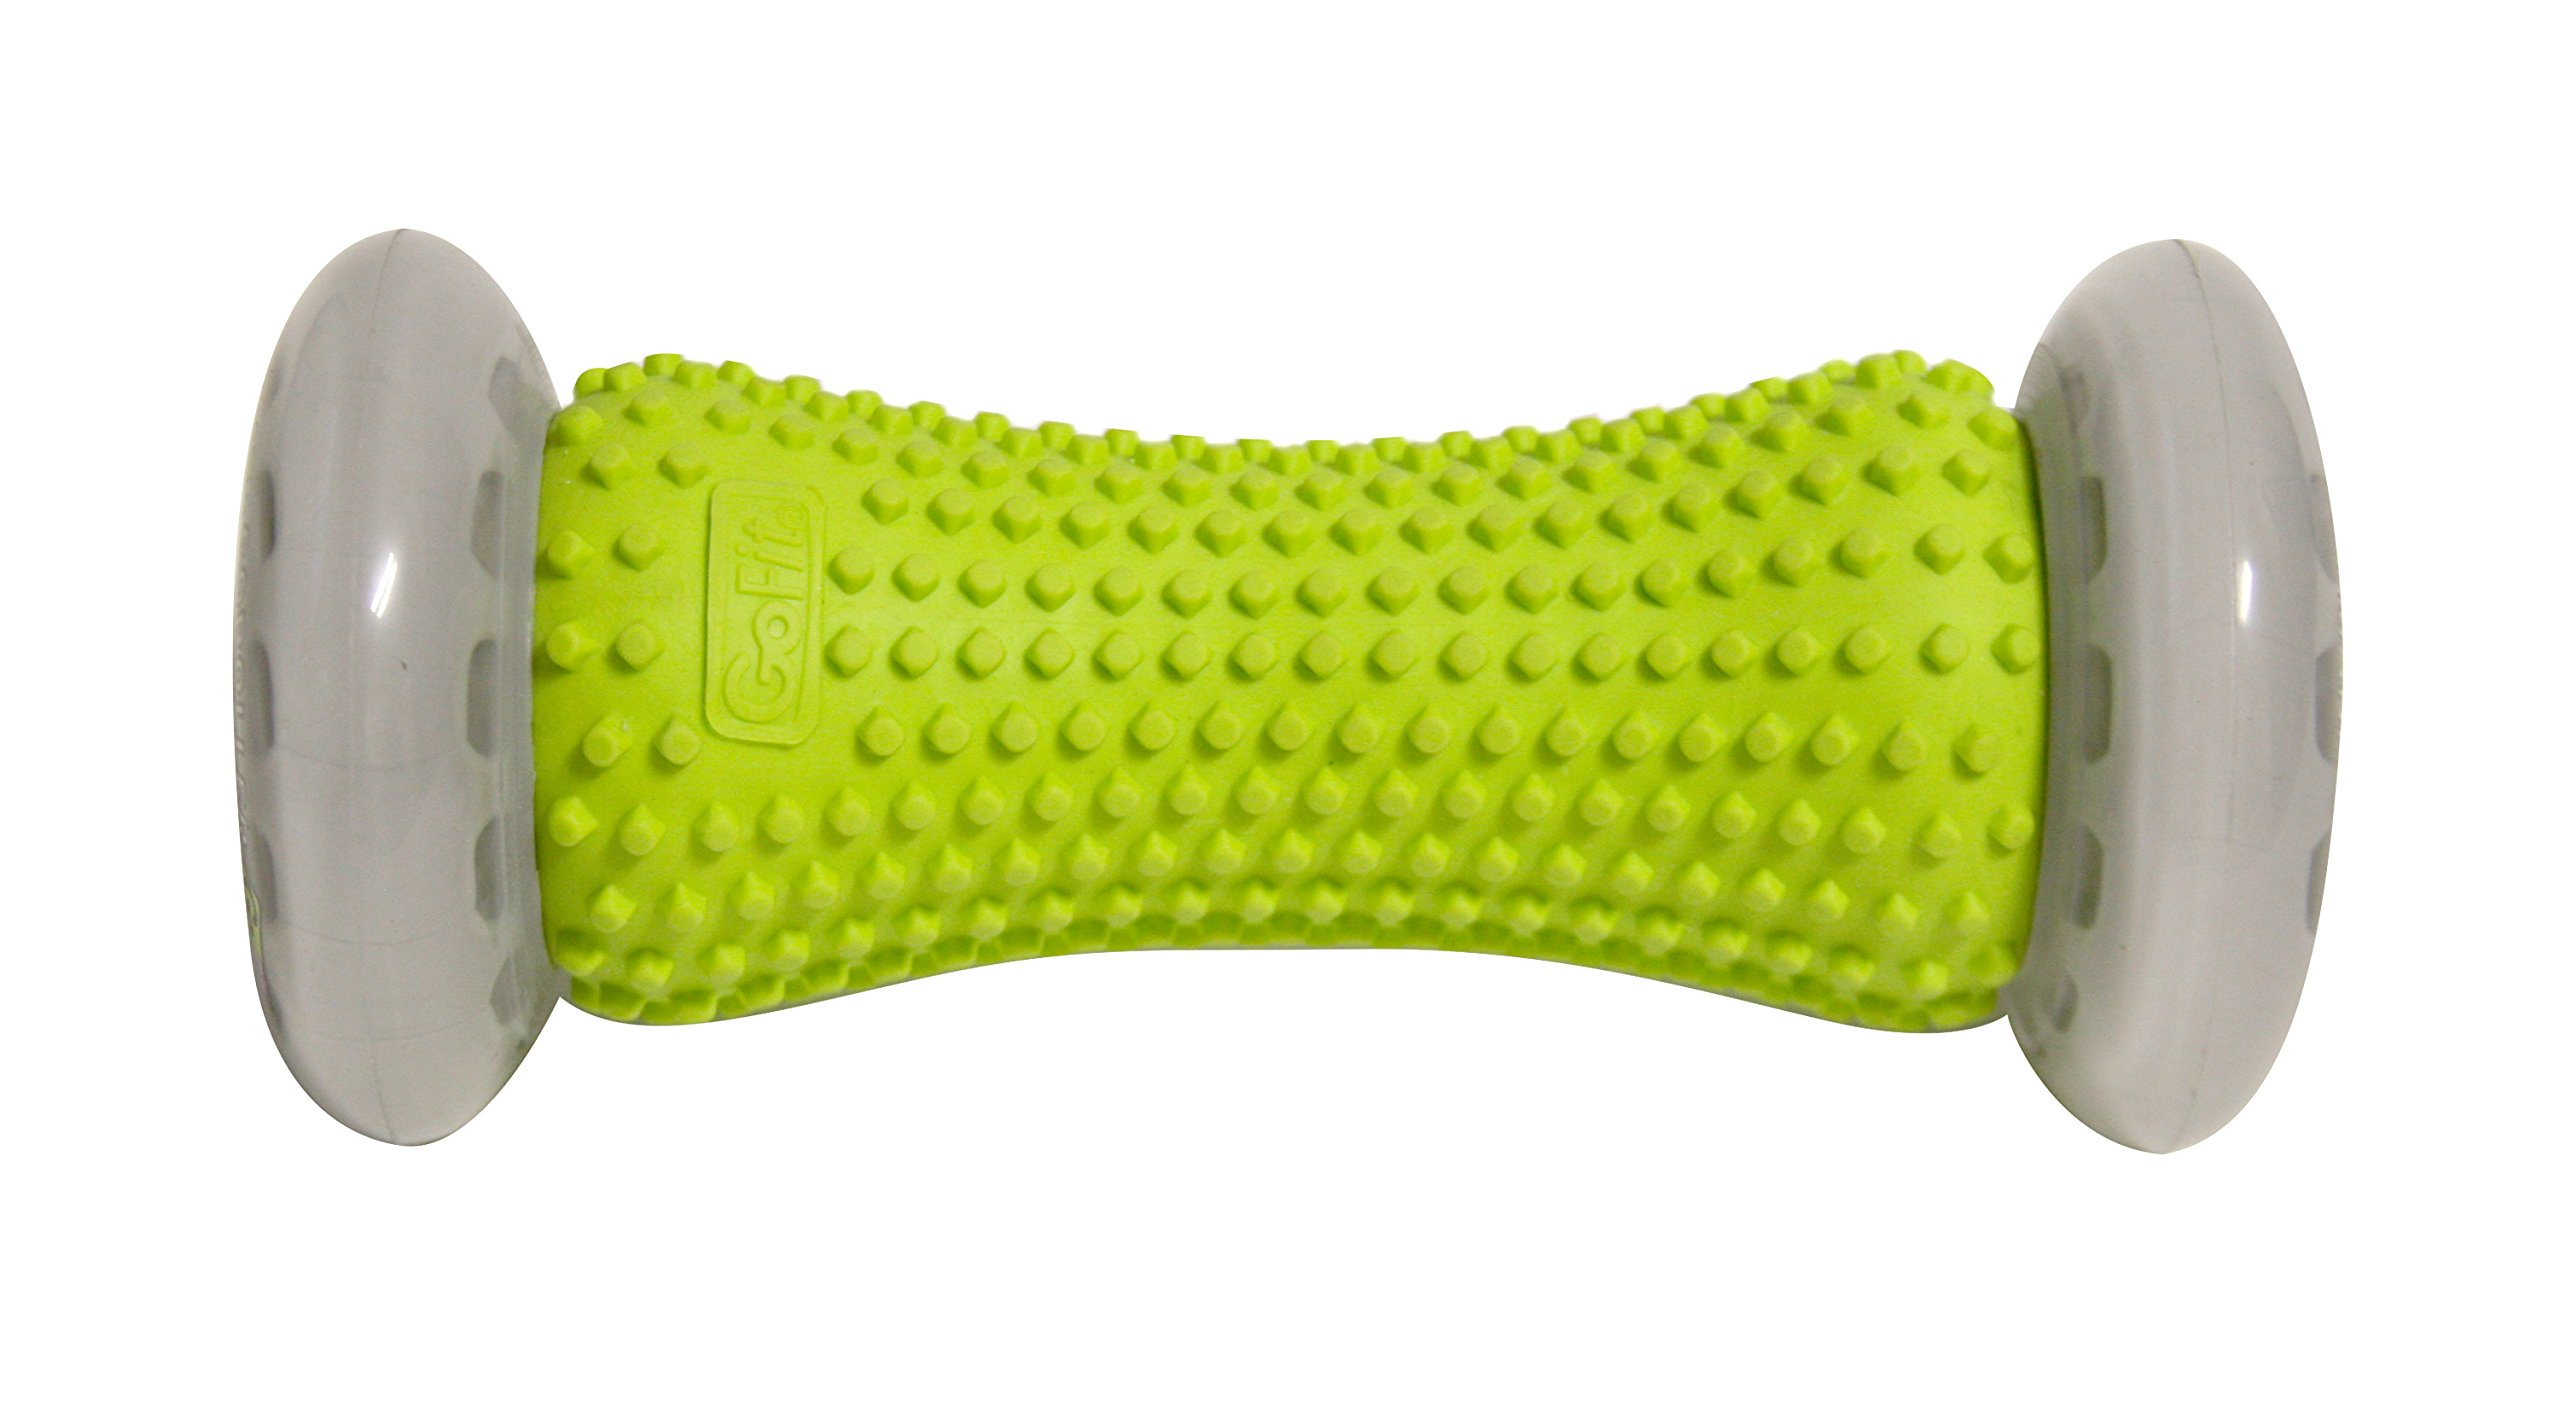 Foot & Hand Massage Roller by GoFit | Targeted Deep-Tissue Massage for Plantar Fasciitis, and Muslce Therapy